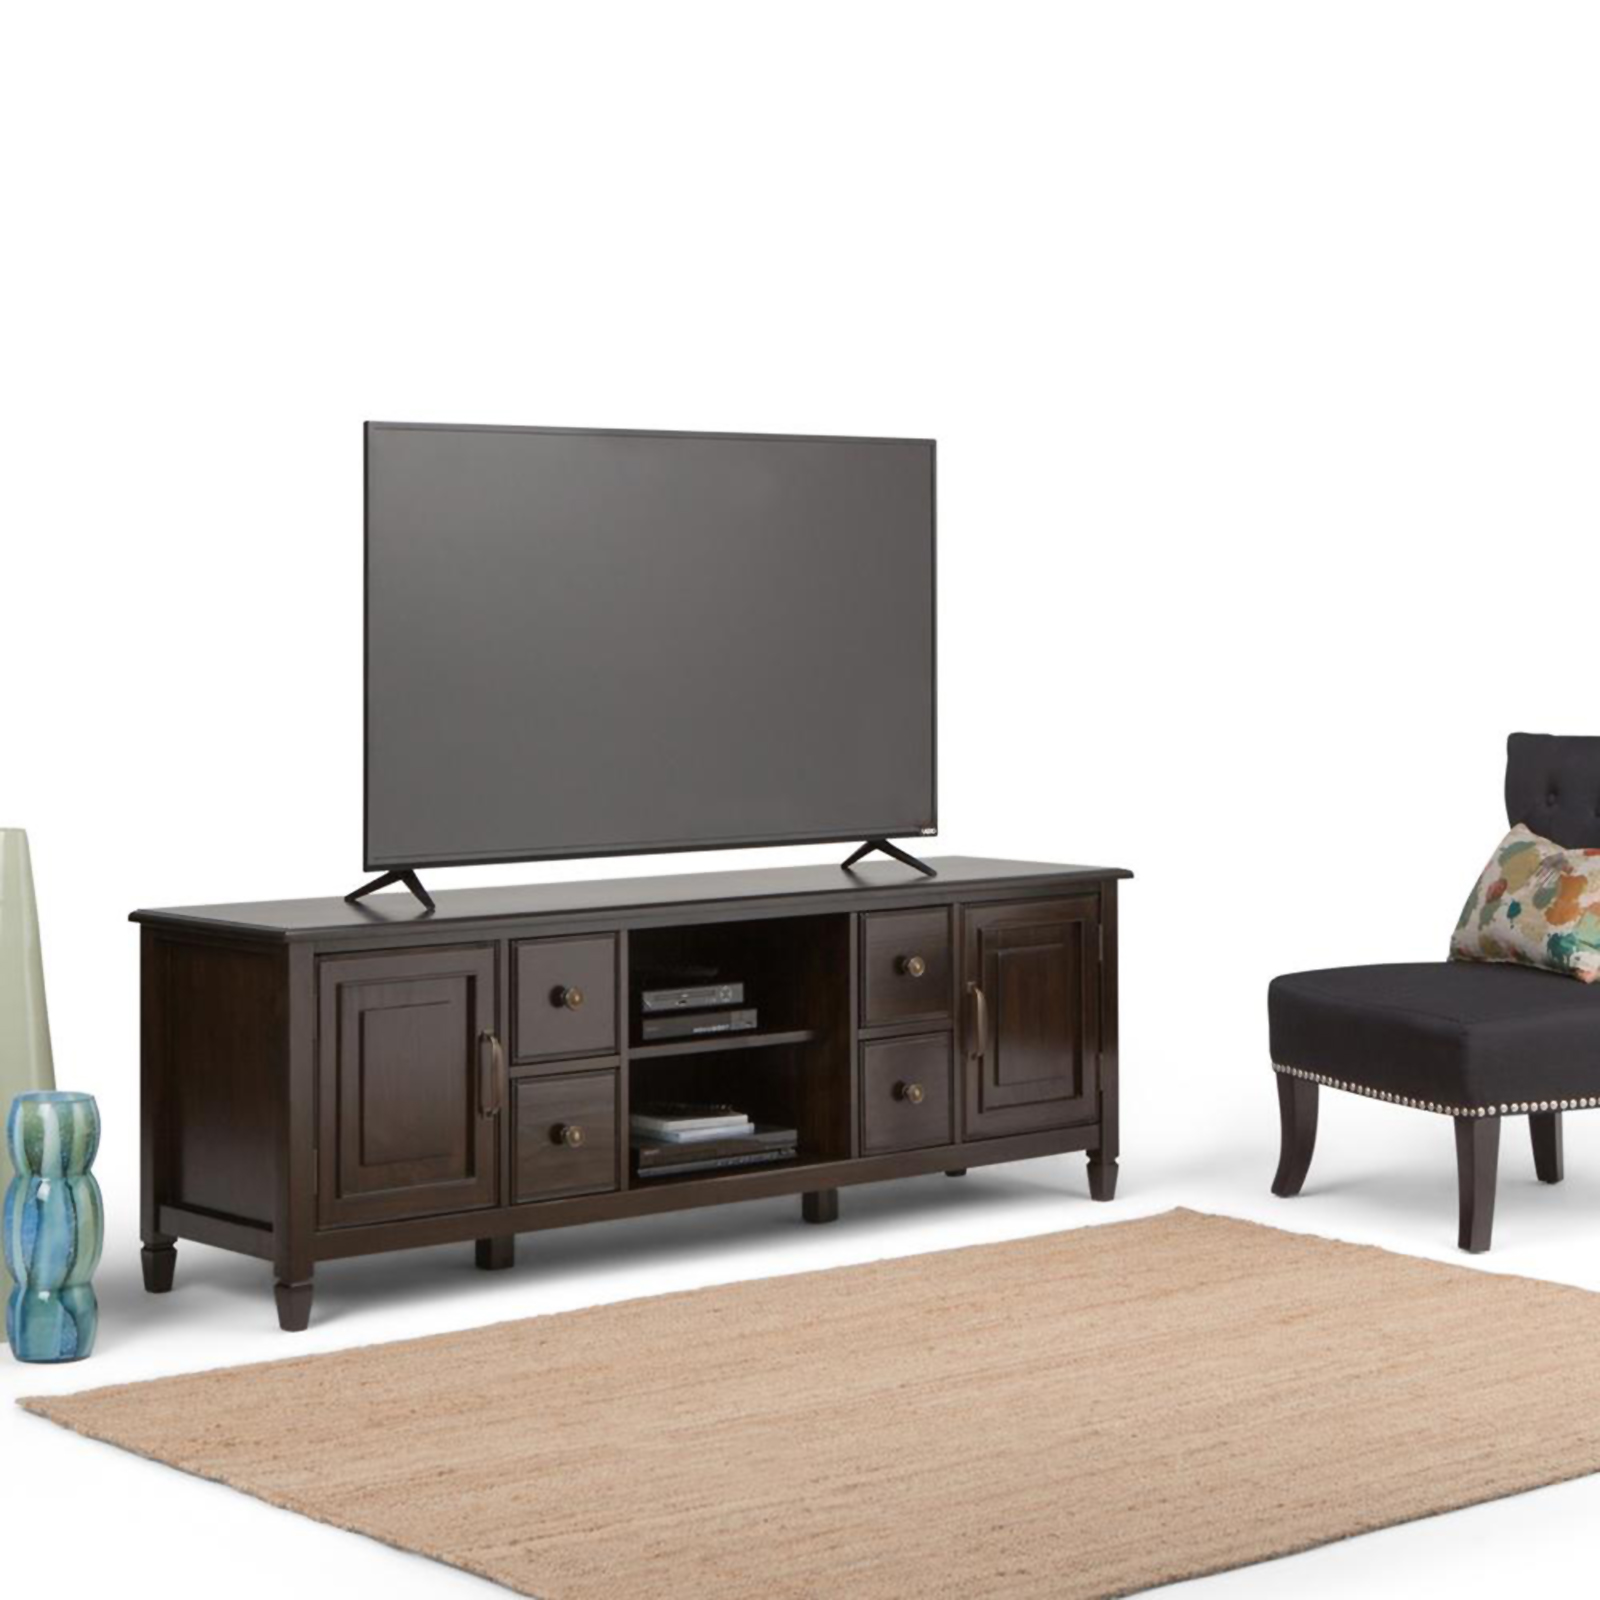 WyndenHall Hampshire 72inch TV Media Stand For Up To 80inch TVu0027s Dark Tv Stand 80 Inches Wide58